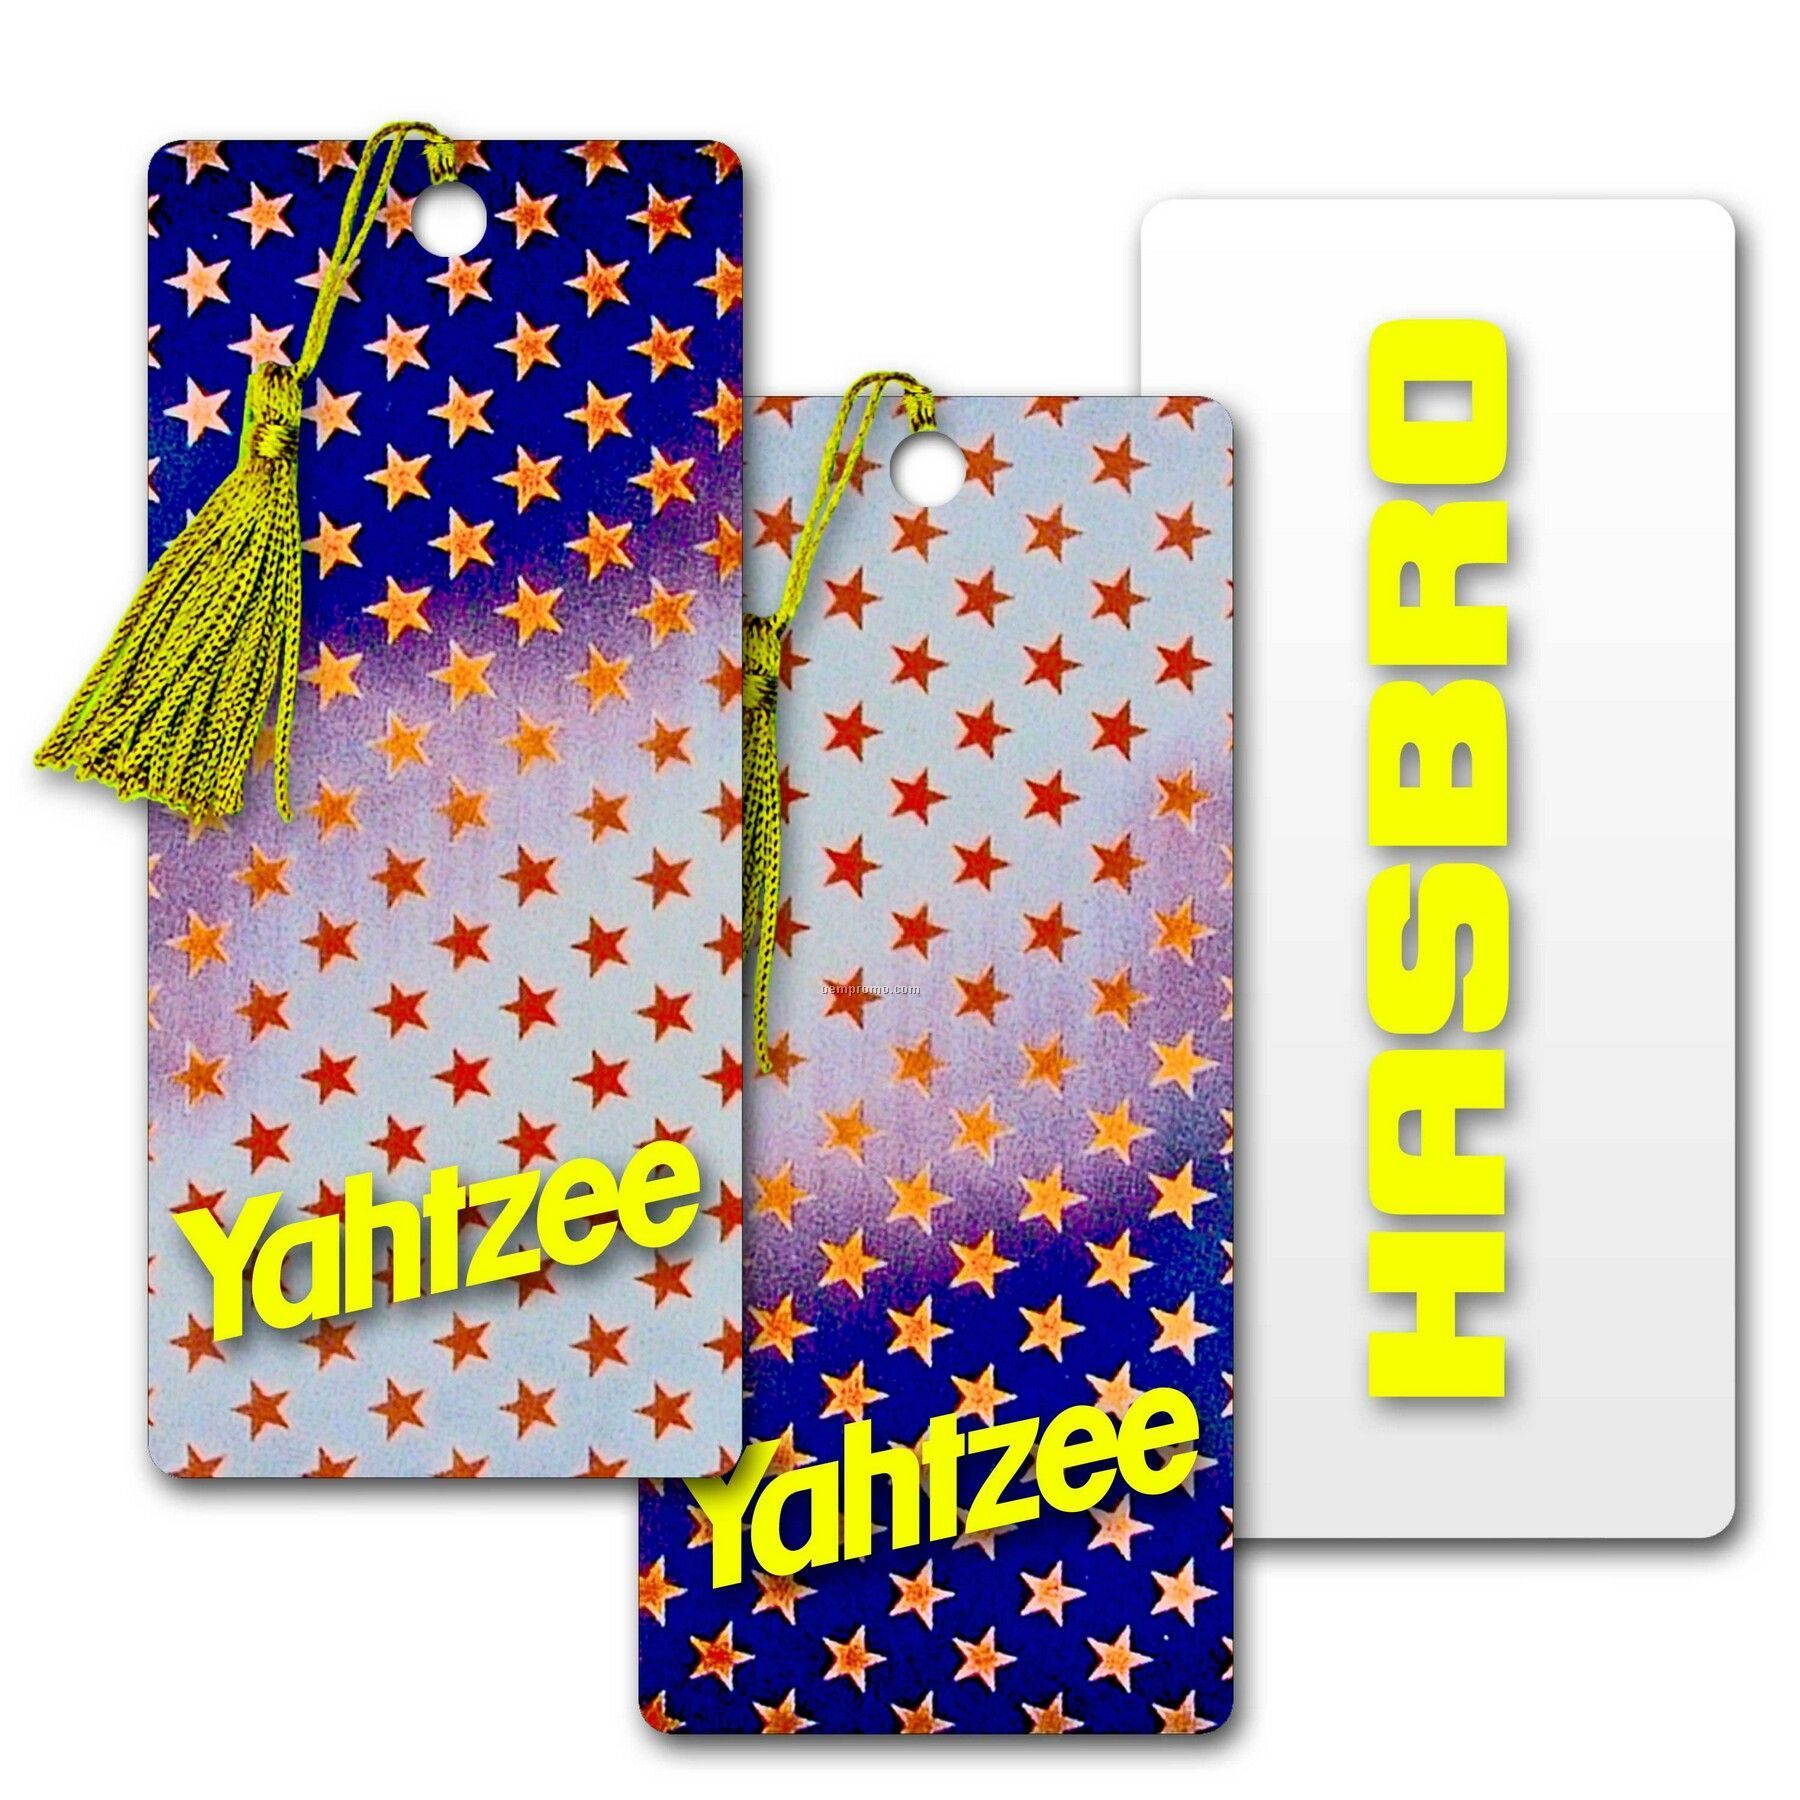 Pvc Bookmark W/3d Lenticular Image Of Animated Stars (Imprinted)